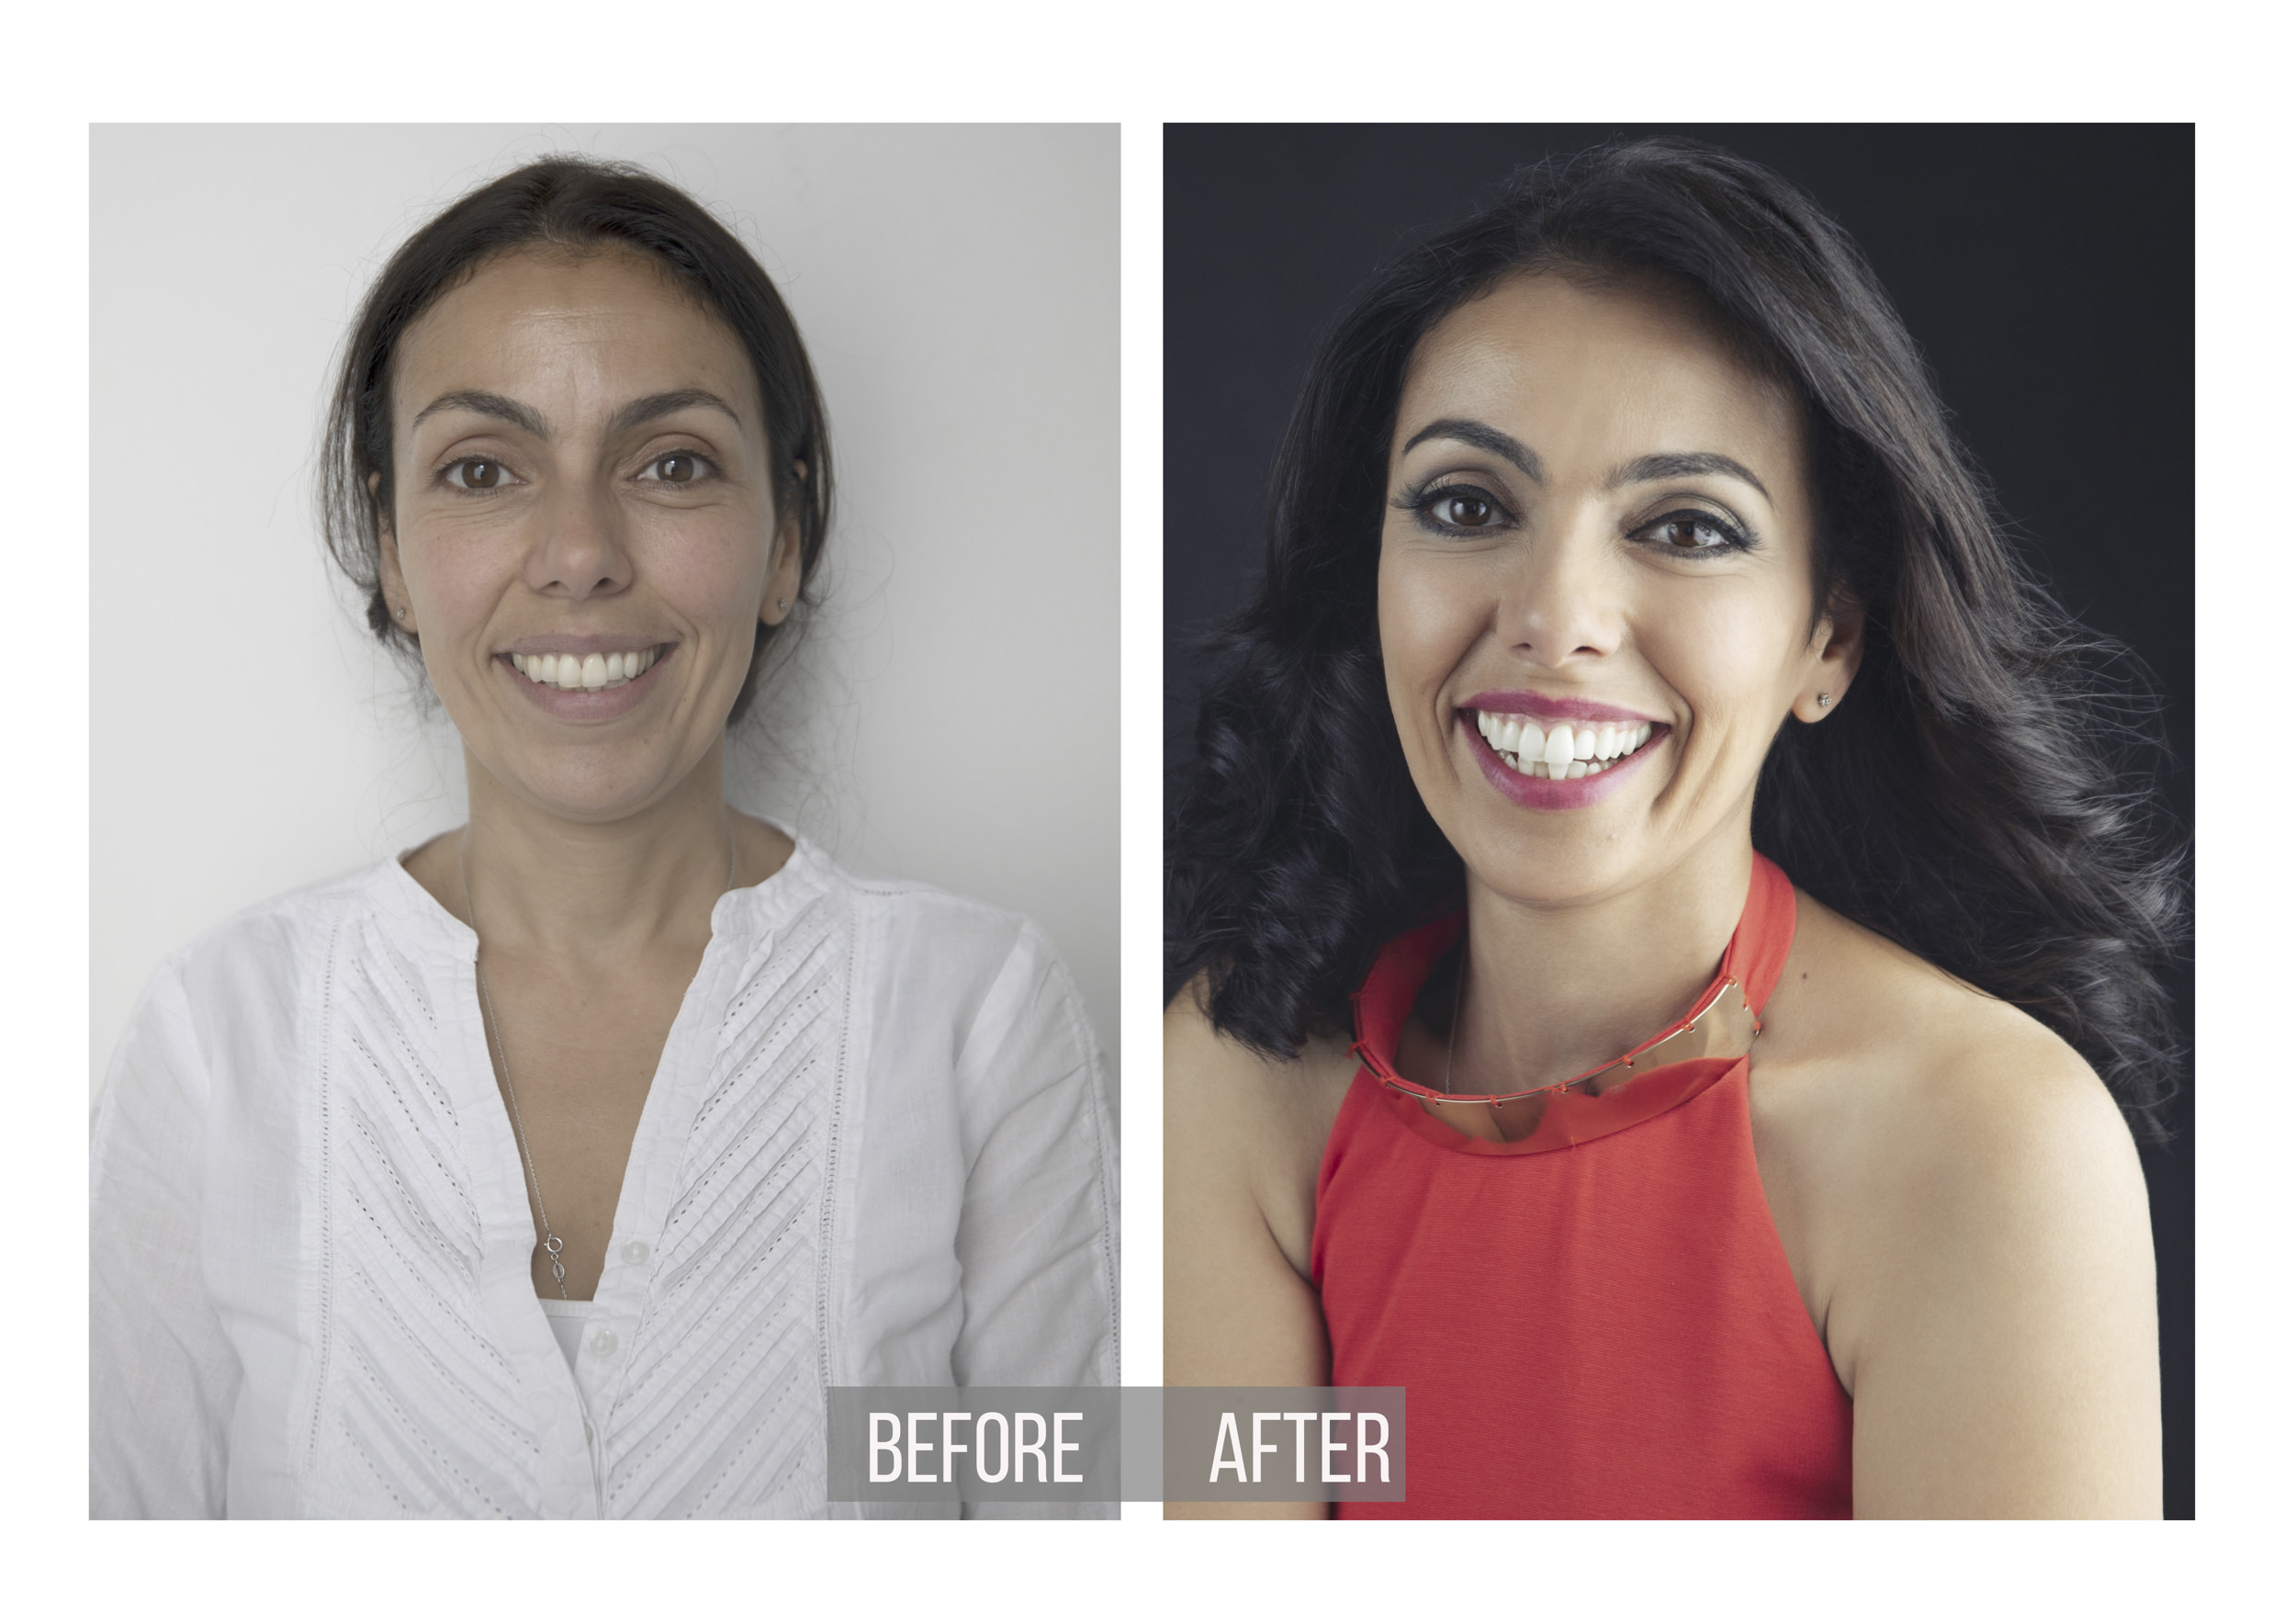 Glamour-Before-and-after-Portraiture-Model-Transformation